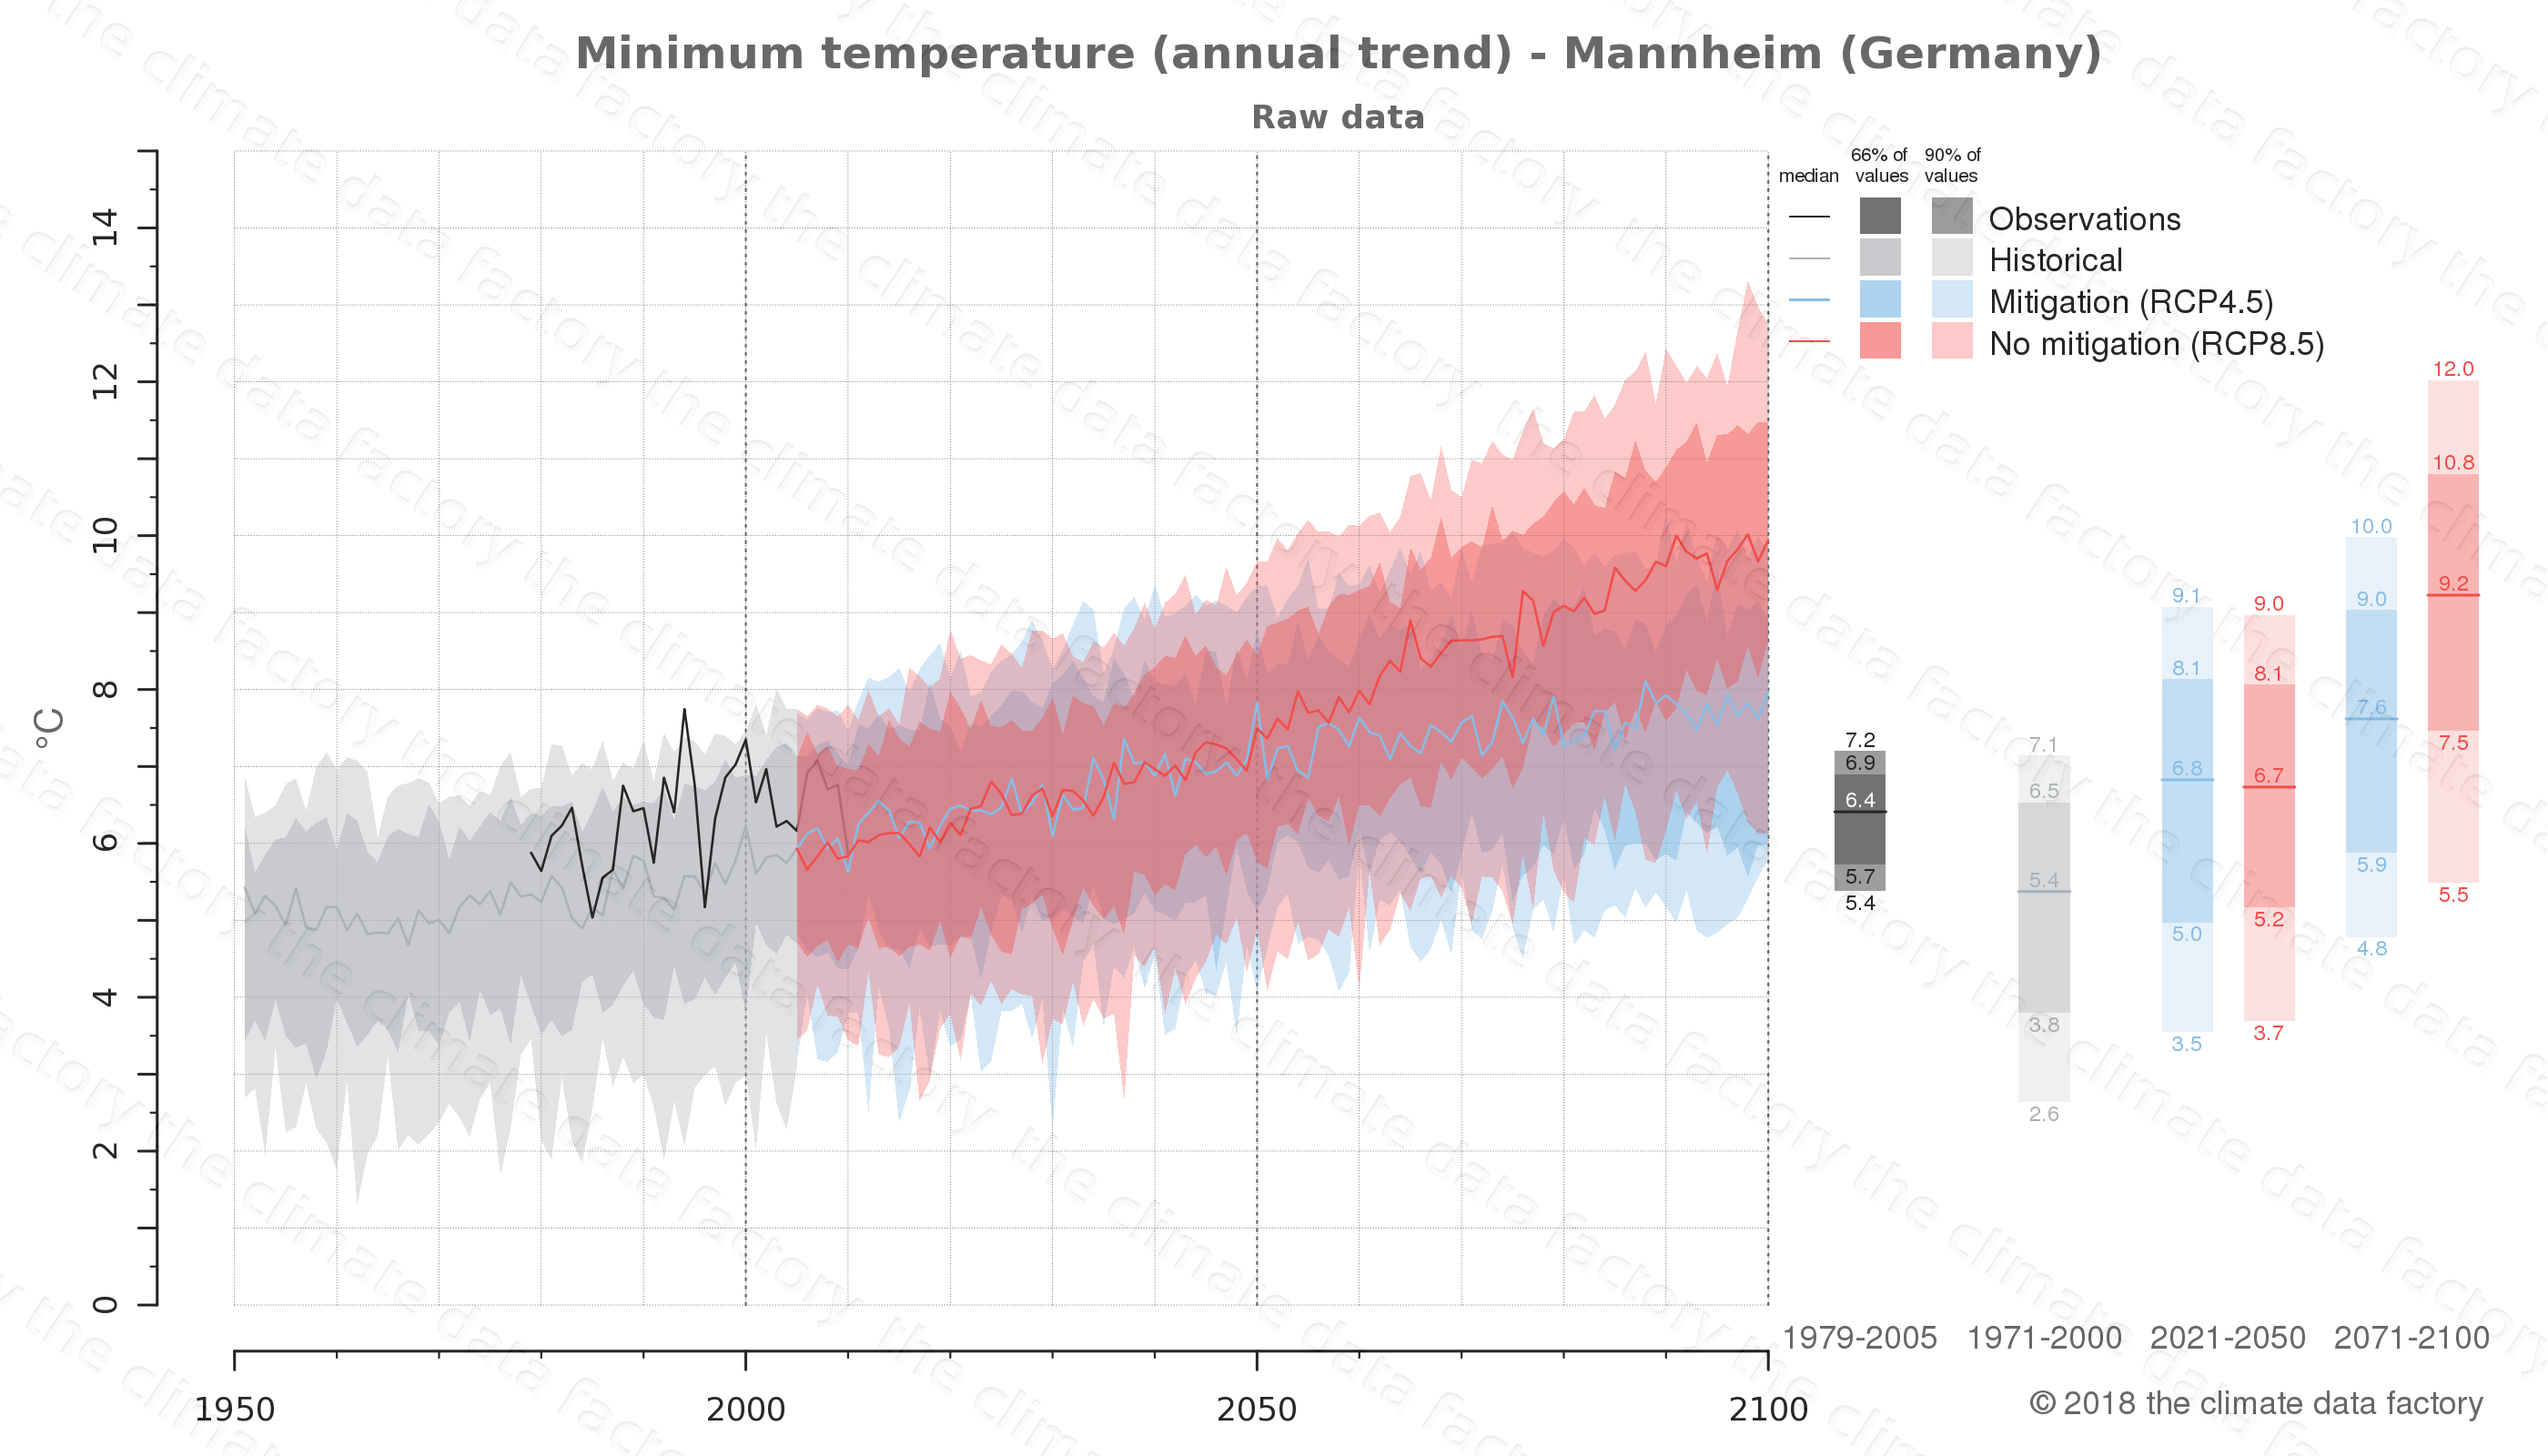 climate change data policy adaptation climate graph city data minimum-temperature mannheim germany